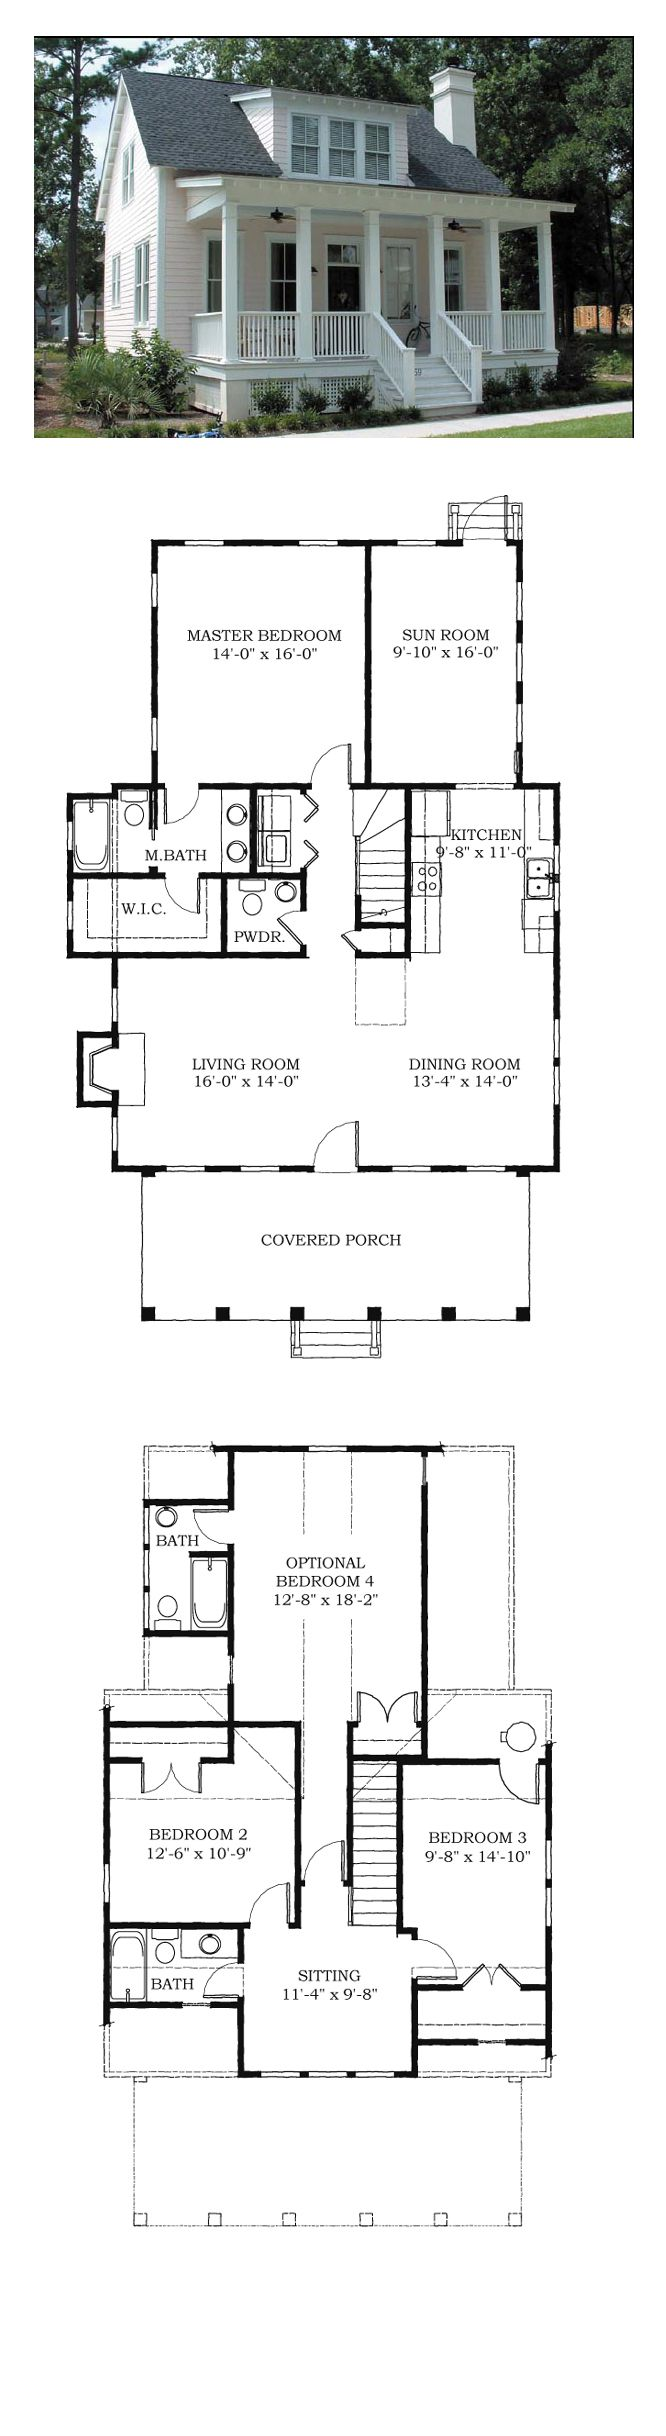 the 25 best small house plans ideas on pinterest small house cool house plan id chp 38703 total living area 1783 sq